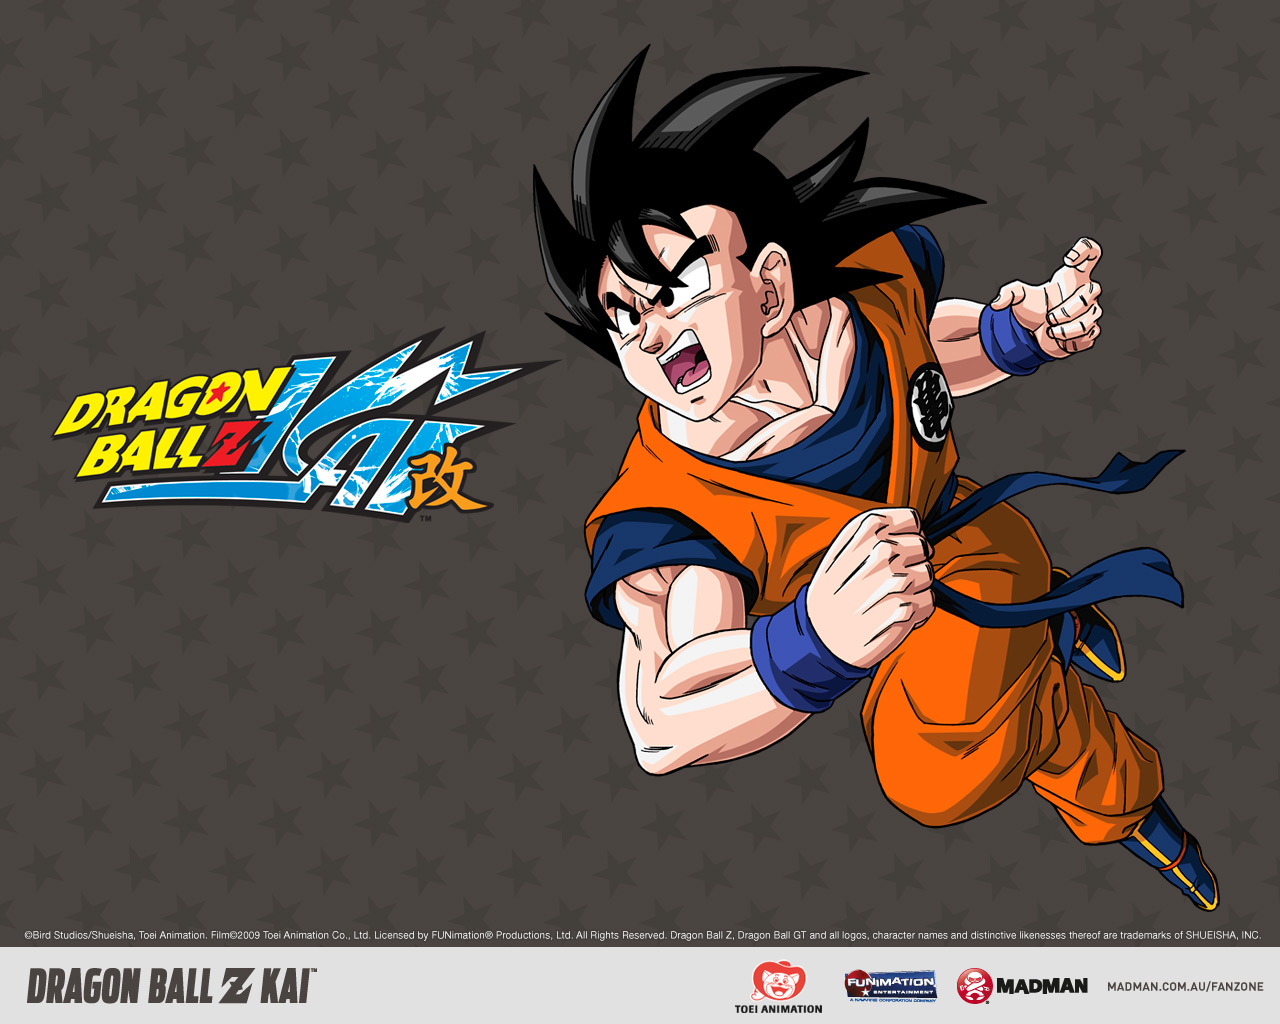 Wallpapers Dragon ball is a hi res Wallpaper for pc desktopslaptops 1280x1024